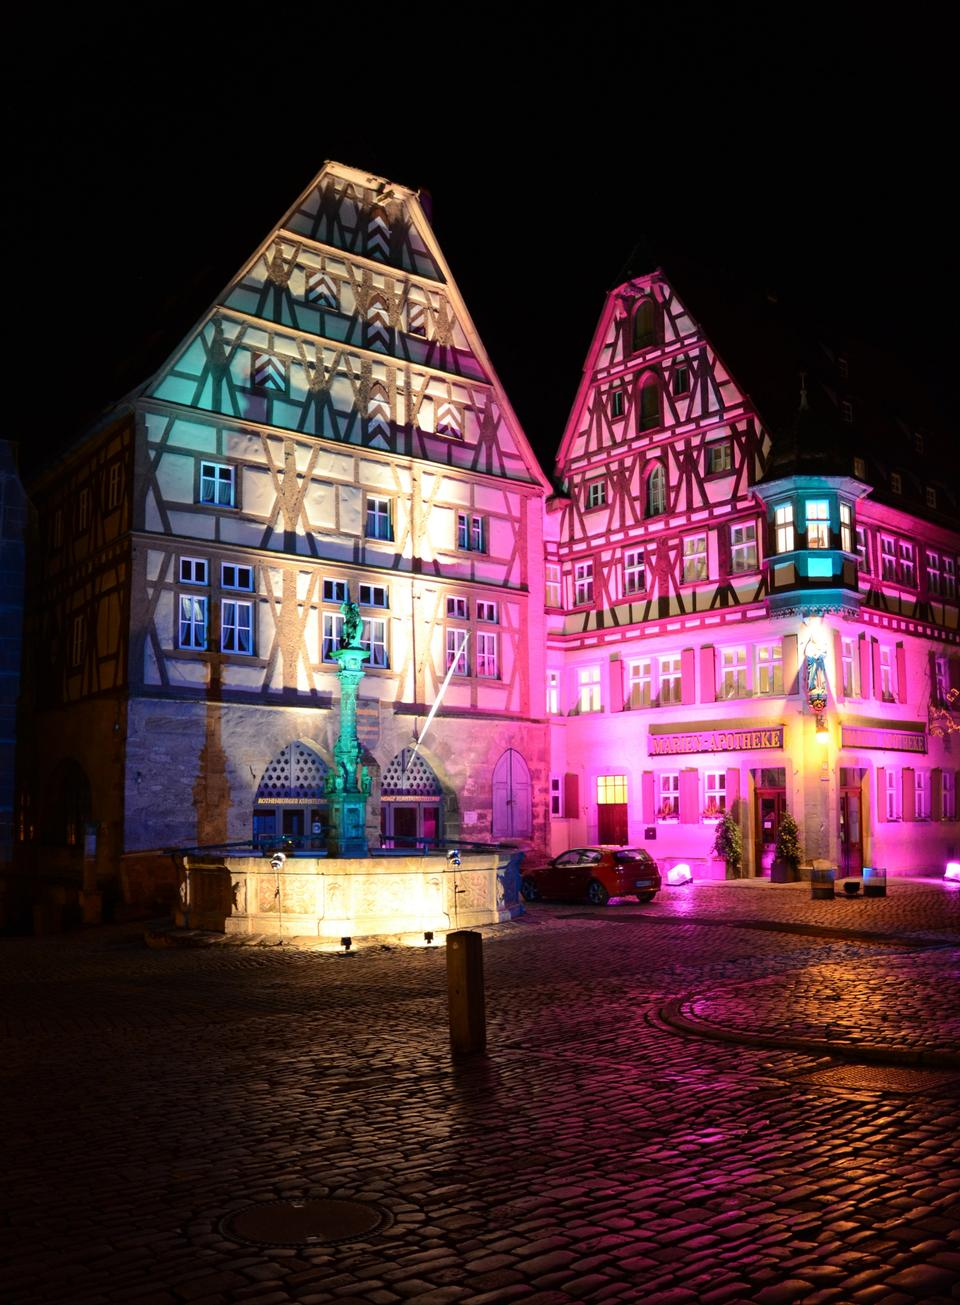 Free Light decoration at night in Rothenburg ob der Tauber, Germany